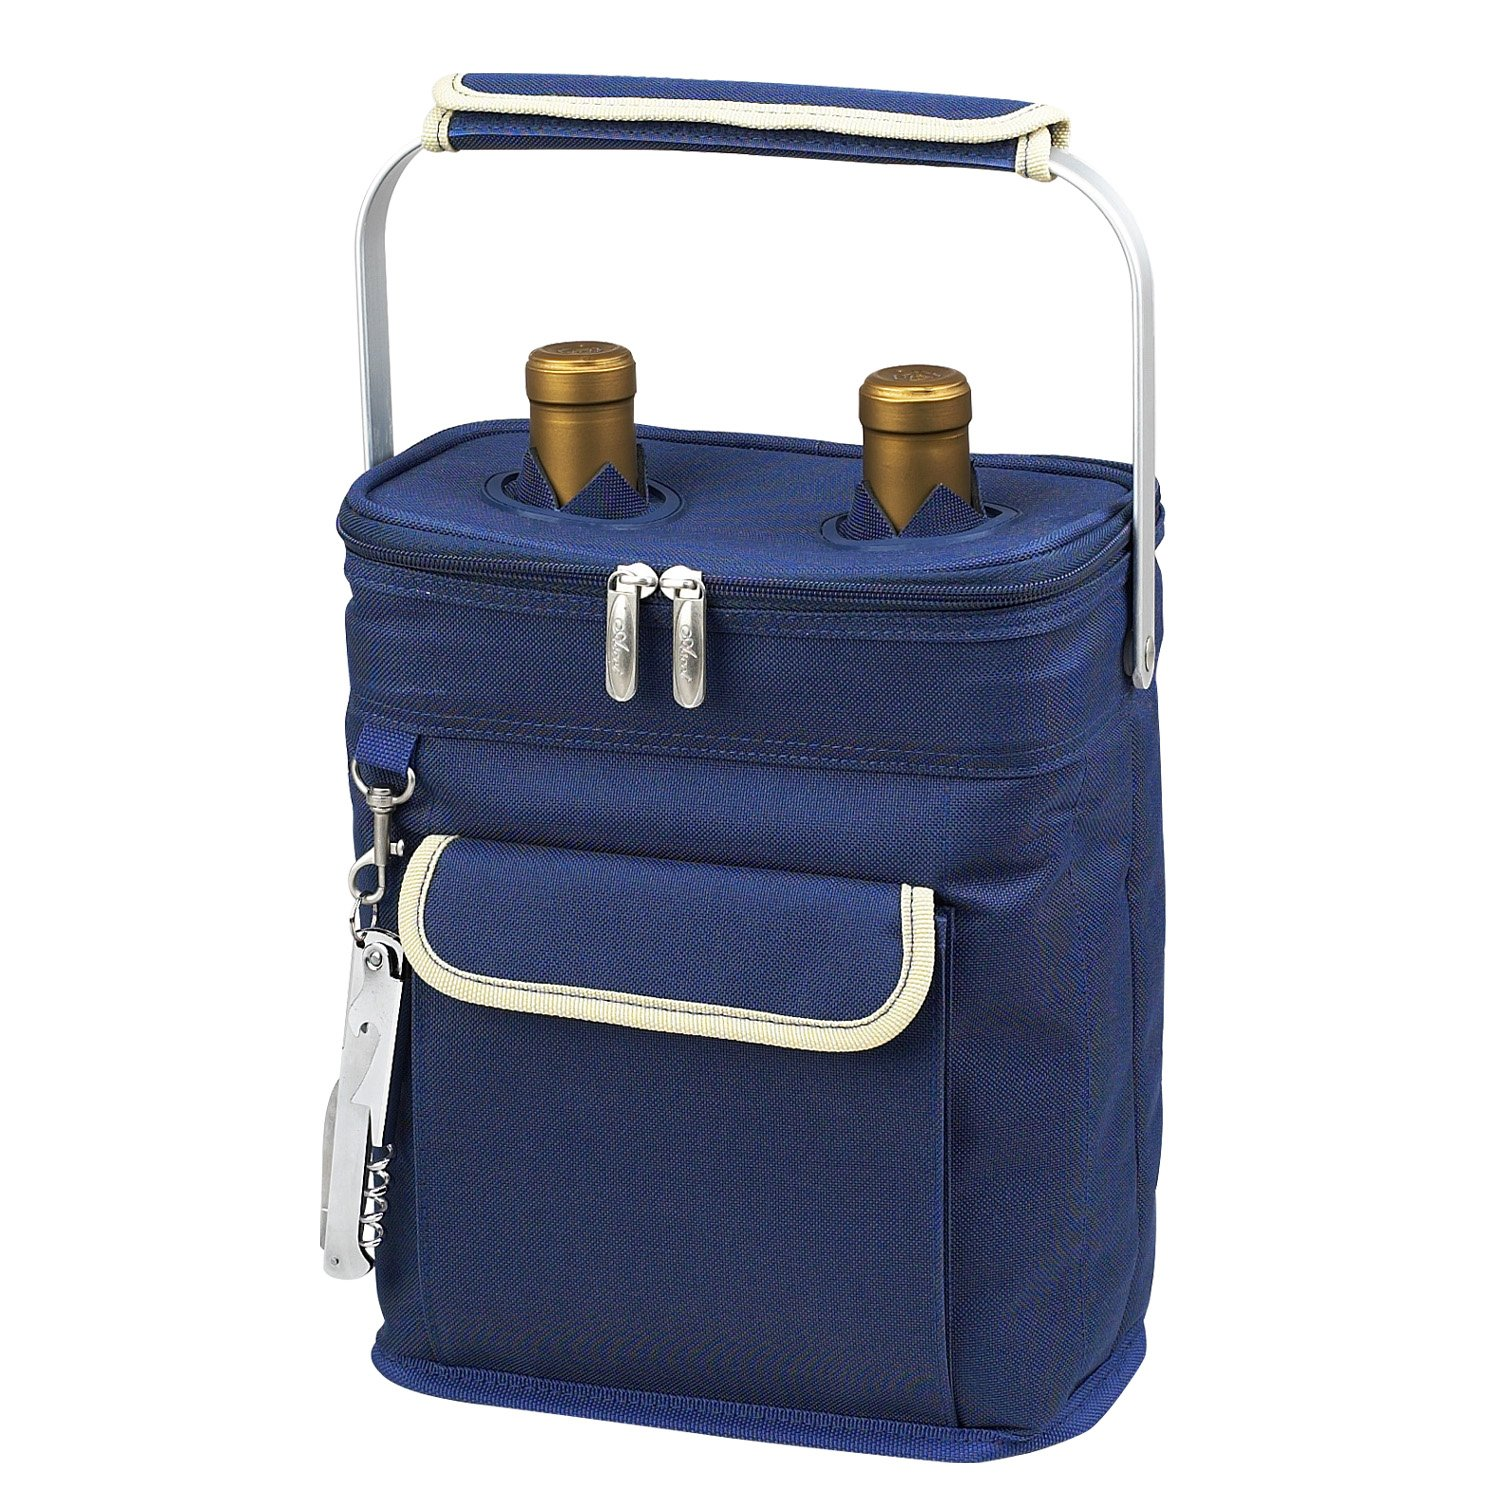 Picnic at Ascot 2 Bottle Insulated Wine Tote Collapsible Multi Purpose Cooler, Blue/Cream